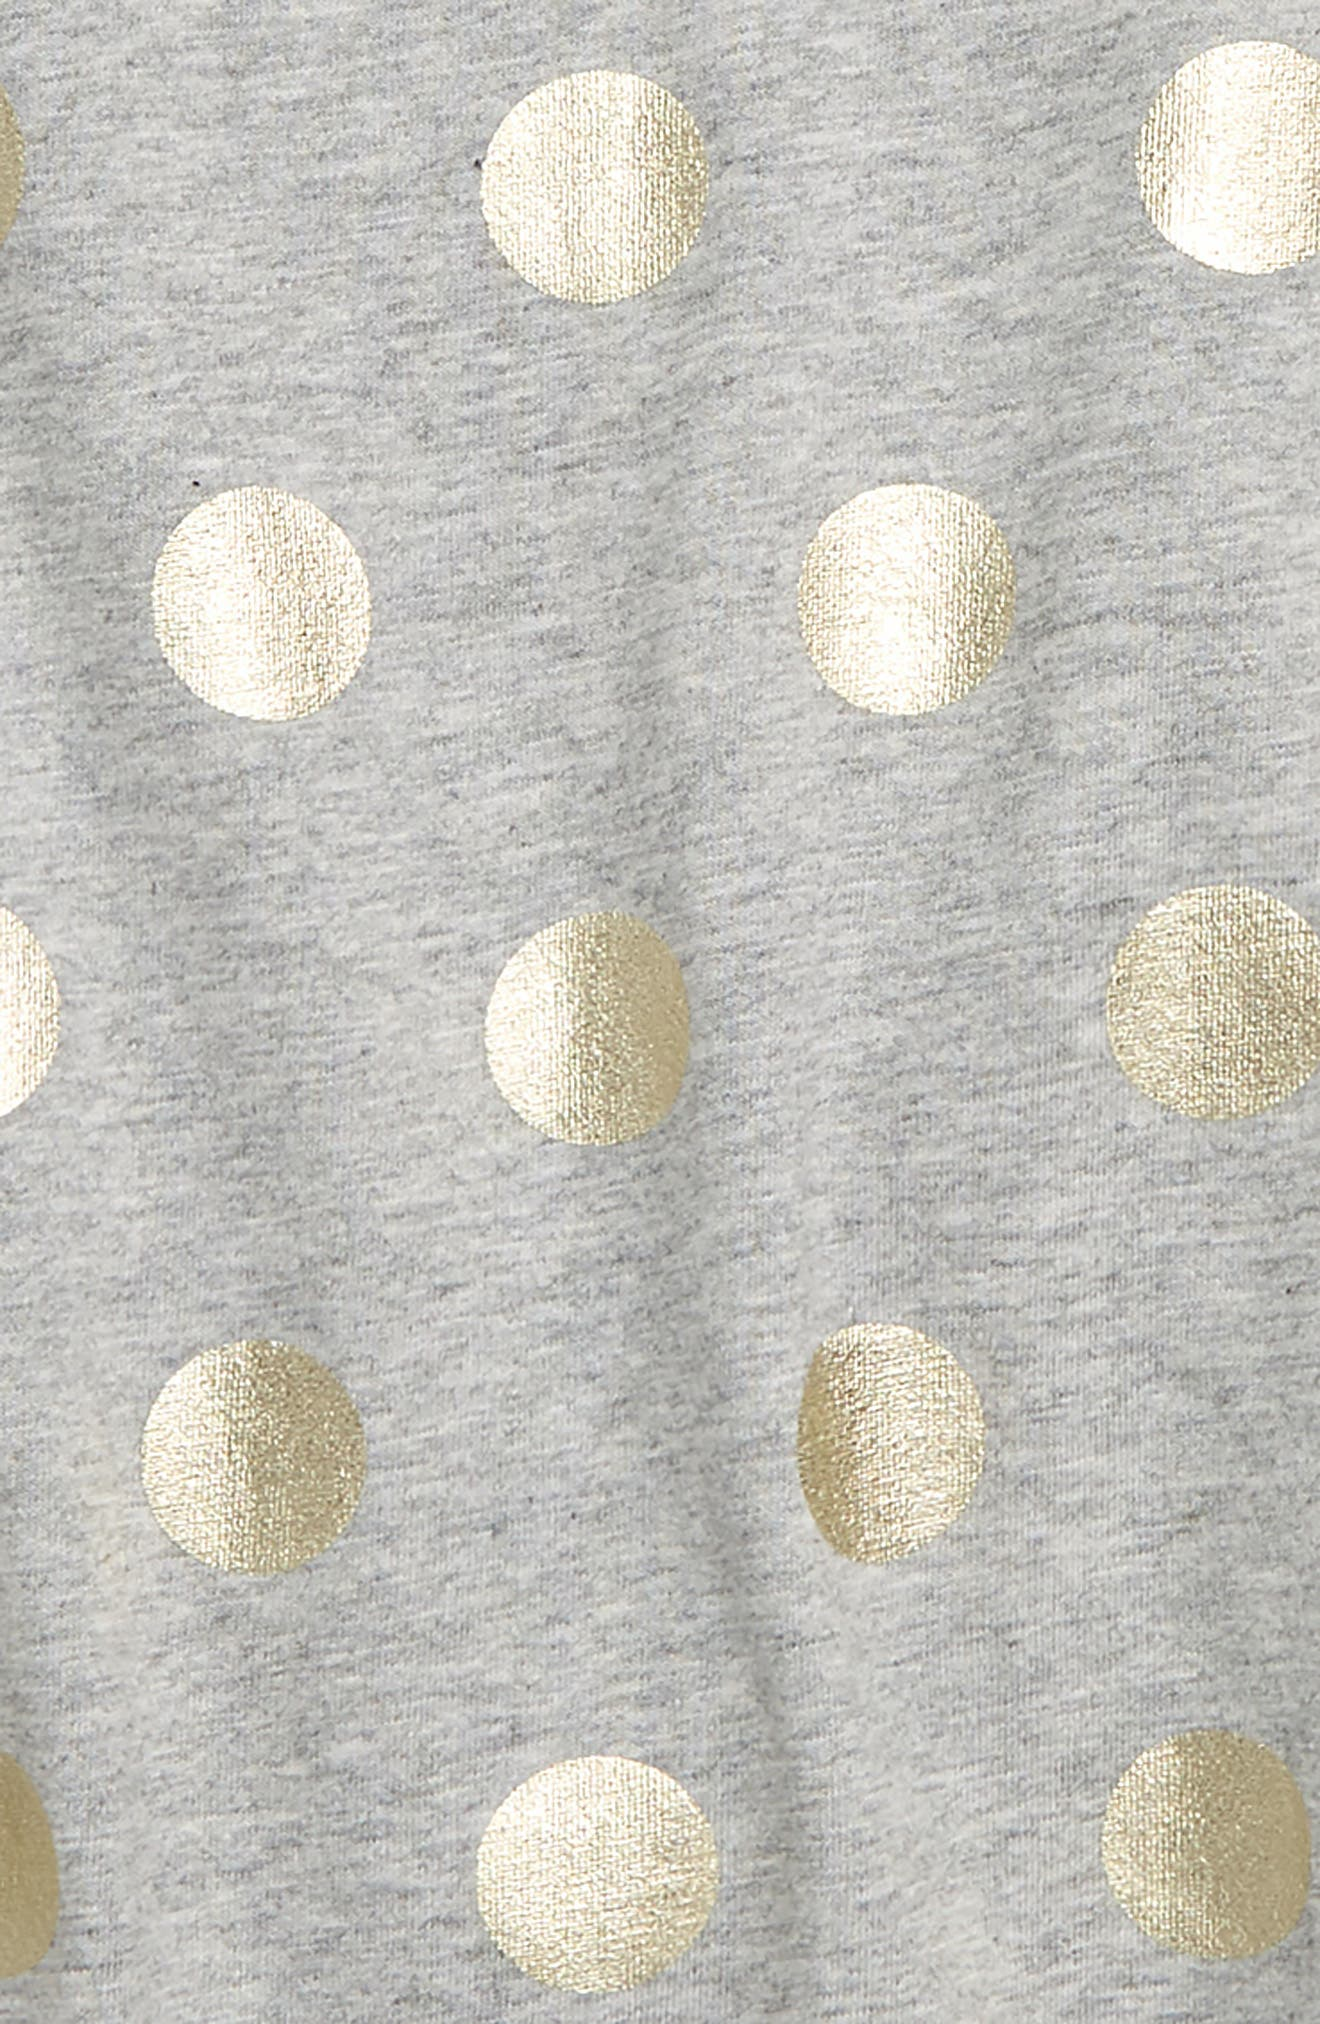 Time to Shine Tee,                             Alternate thumbnail 2, color,                             GREY MARLE/ GOLD FOIL SPOT